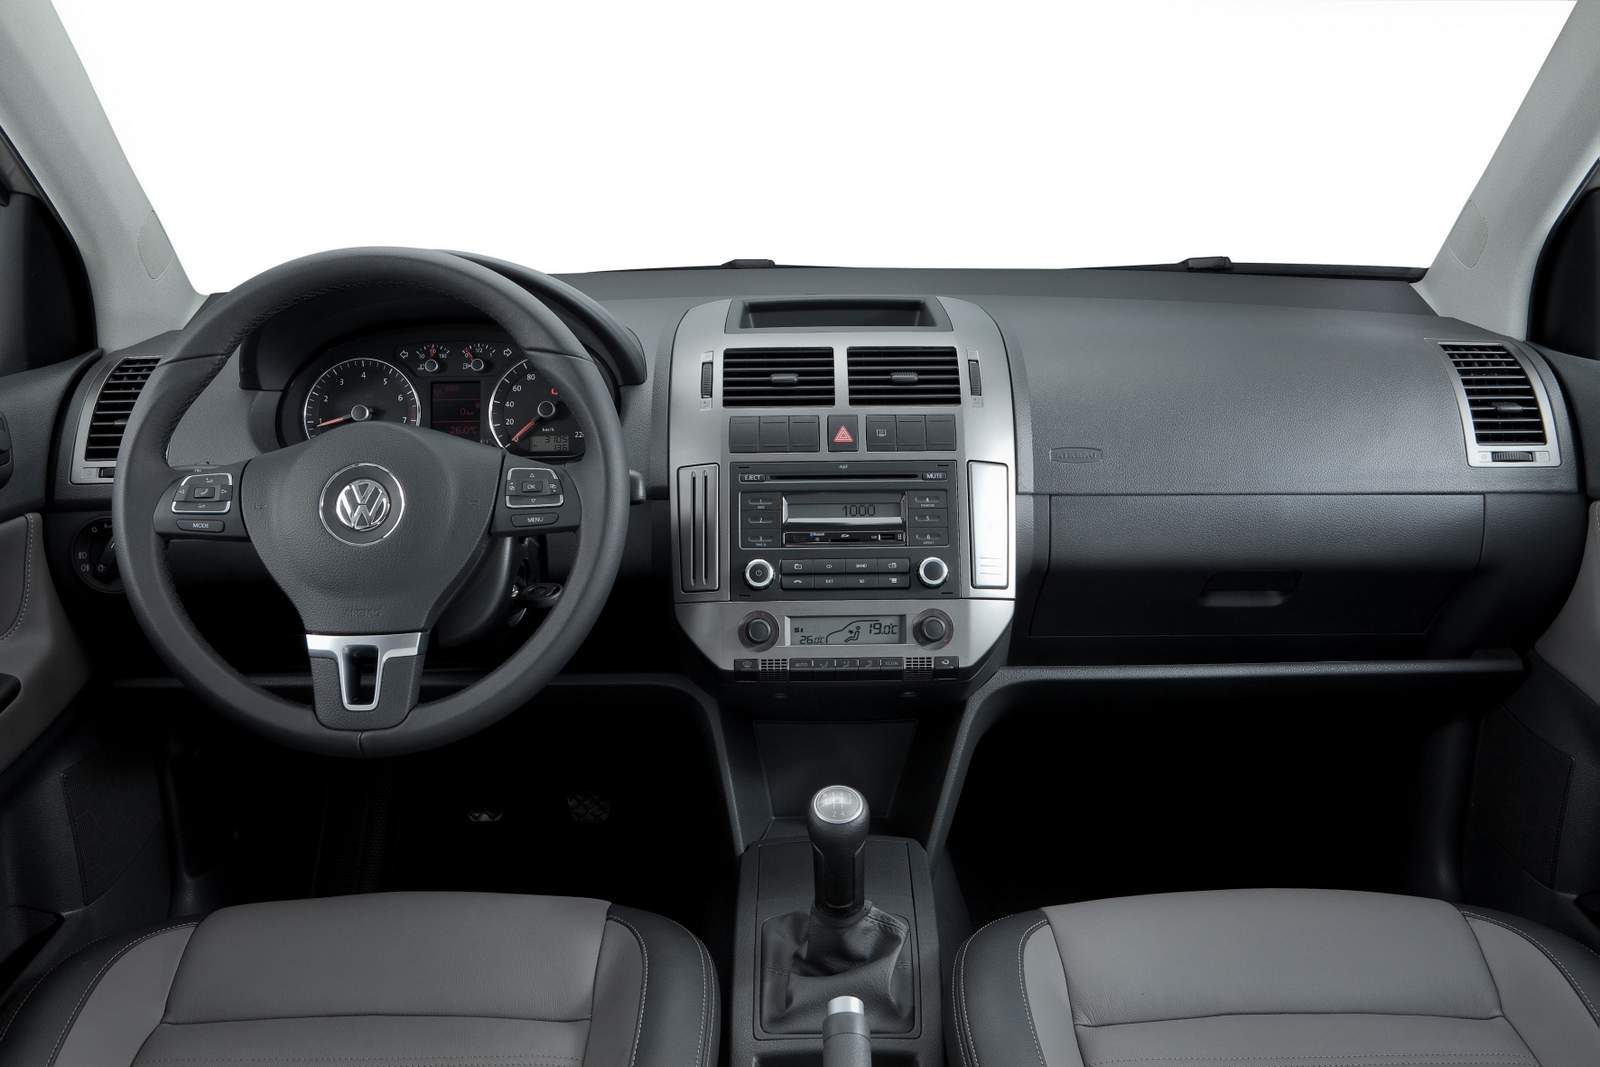 Great Volkswagen Polo Sedan Comfortline 2014 - interior 1600 x 1067 · 99 kB · jpeg